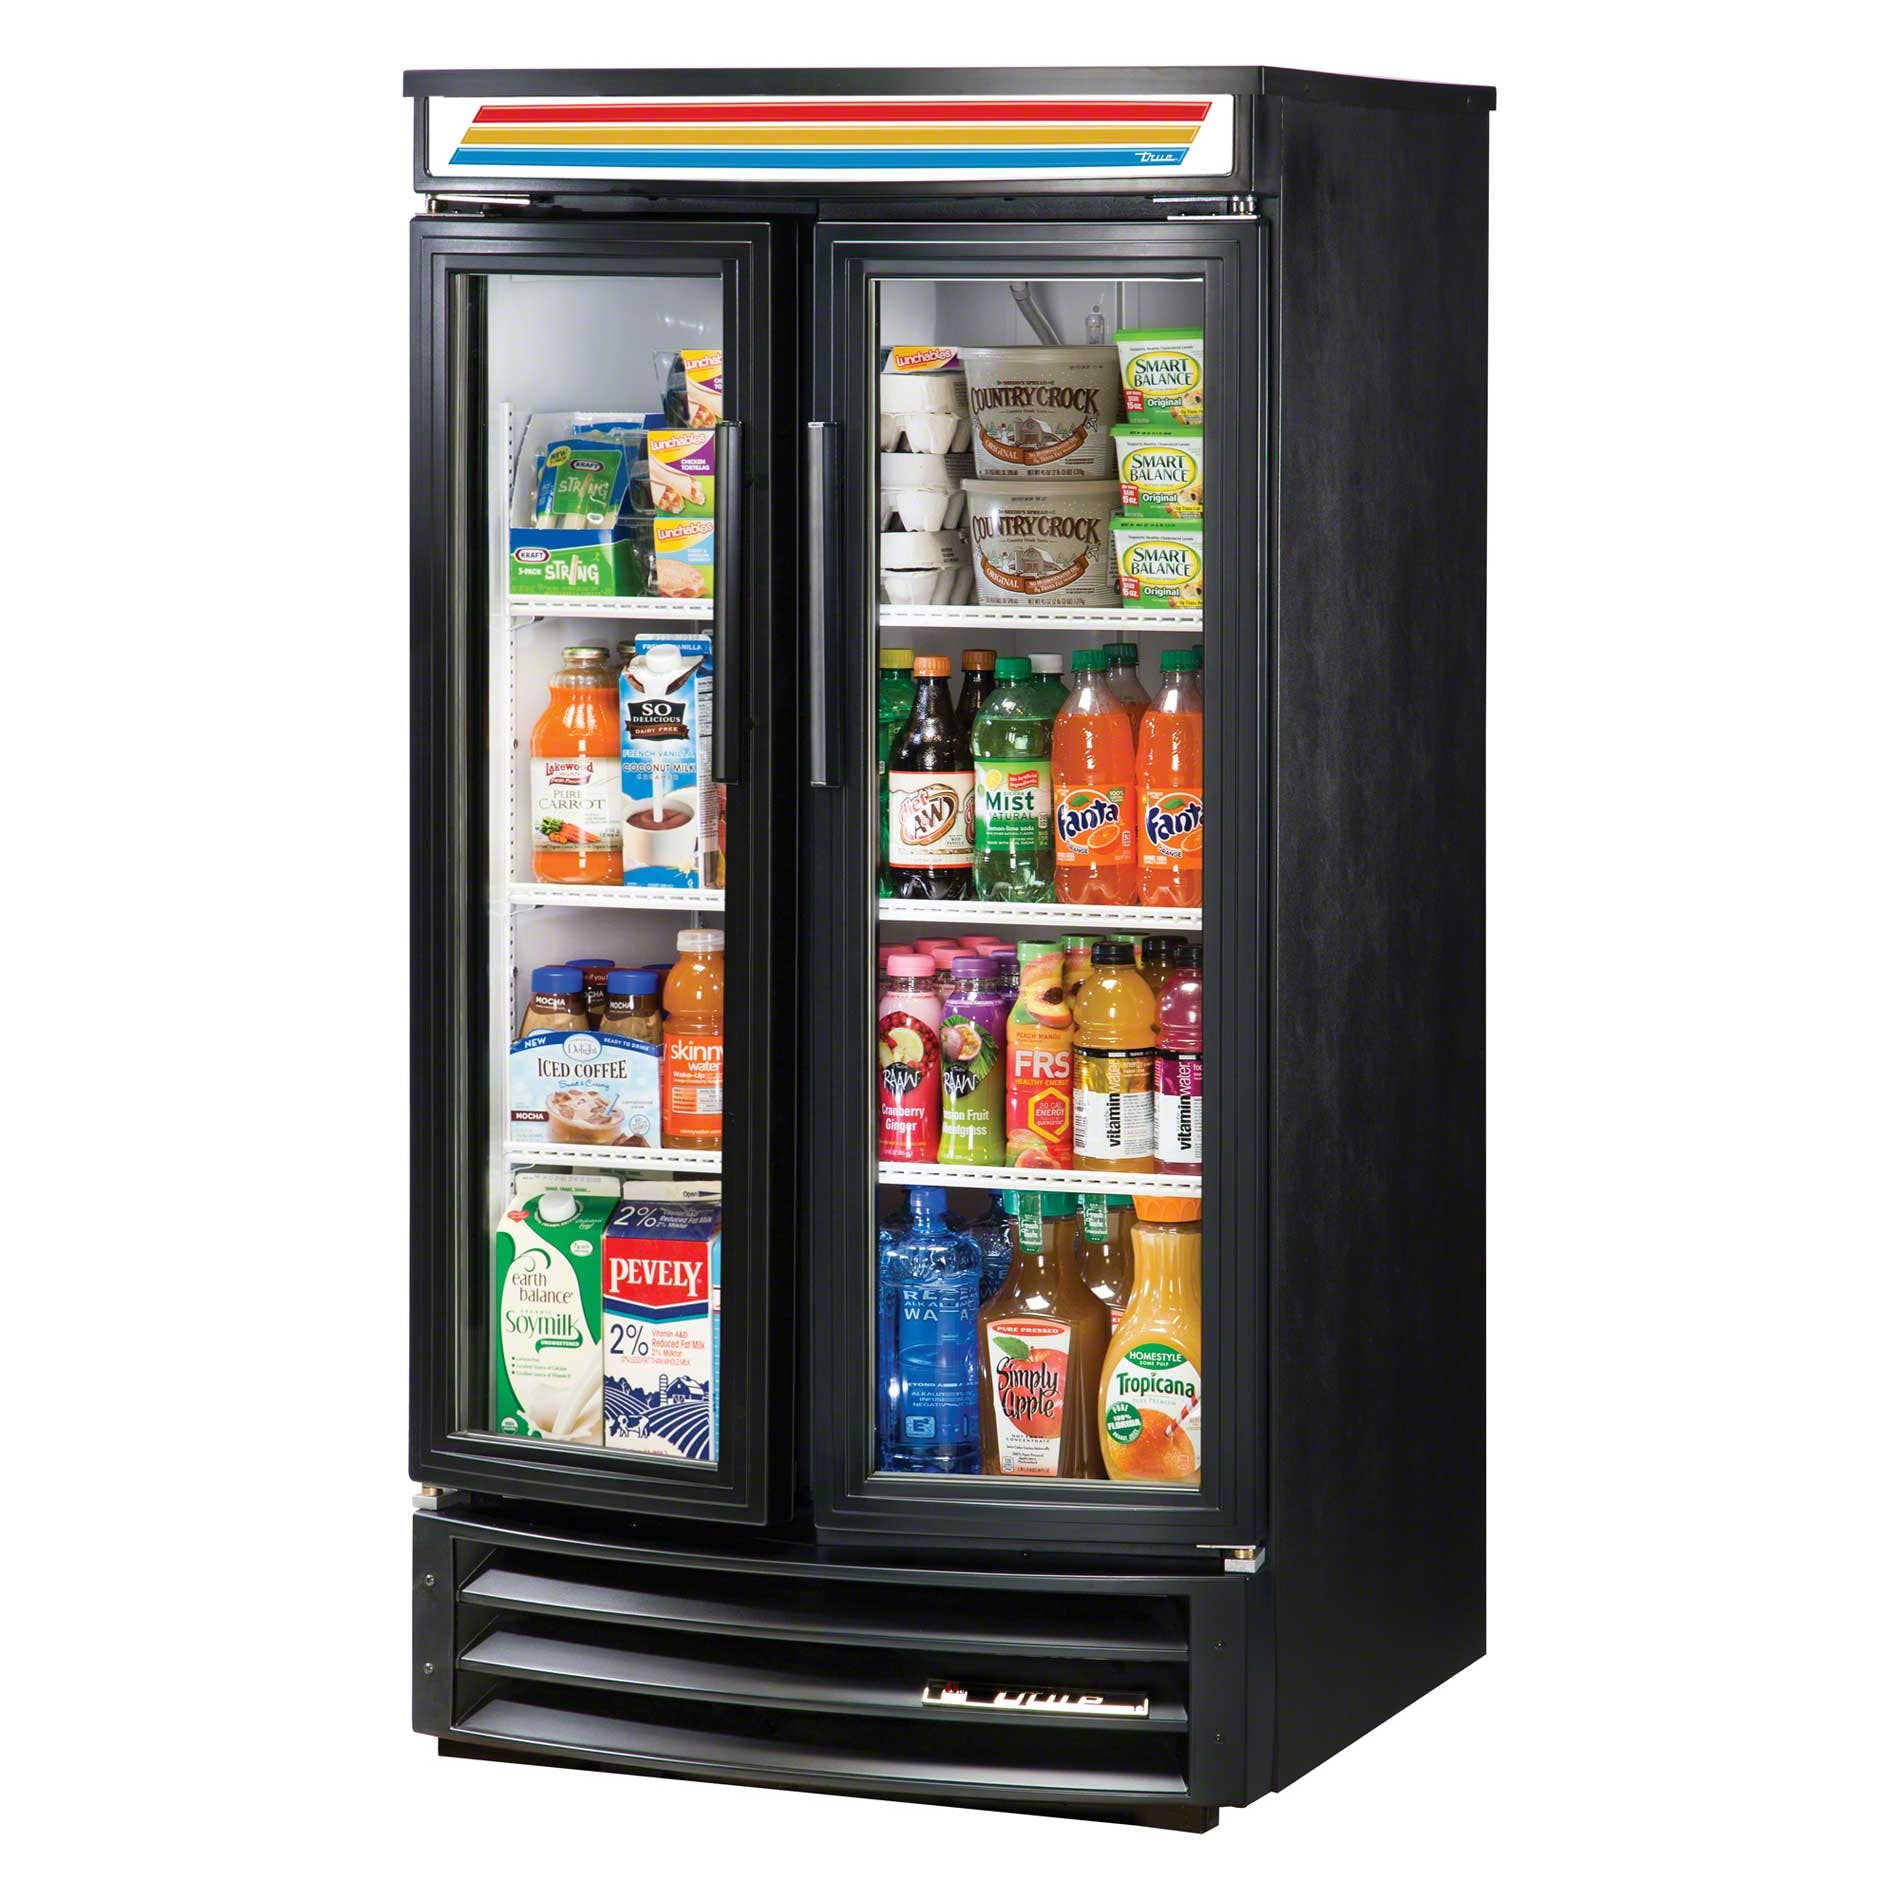 "True - GDM-14RF-LD 31"" Radius Front Glass Door Merchandiser Refrigerator LED Commercial refrigerator sold by Food Service Warehouse"